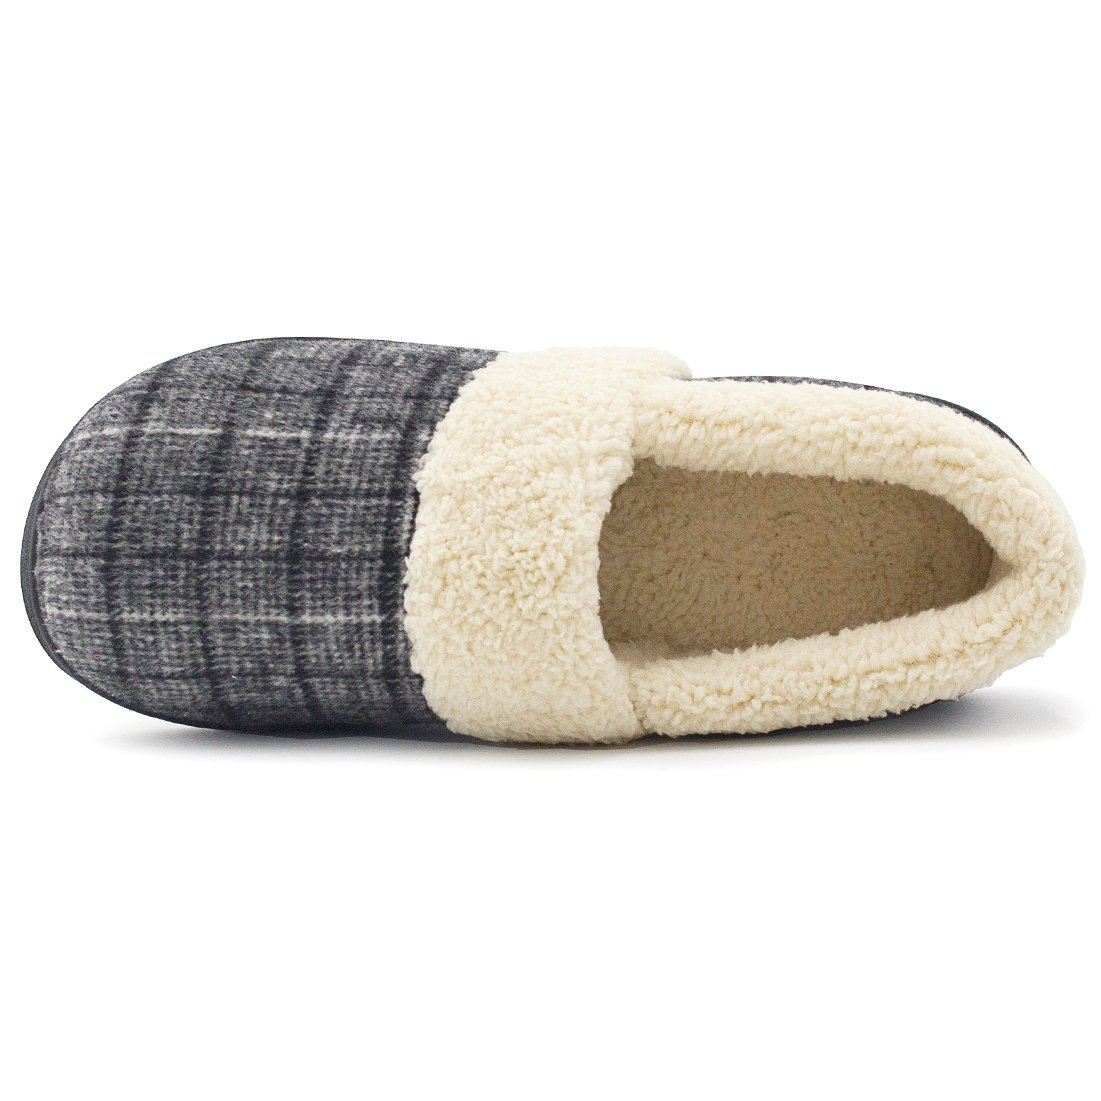 f047869ca Amazon.com | HomeIdeas Women's Woolen Fabric Plaid House Slippers,  Anti-Slip Breathable Indoor/Outdoor Shoes | Slippers